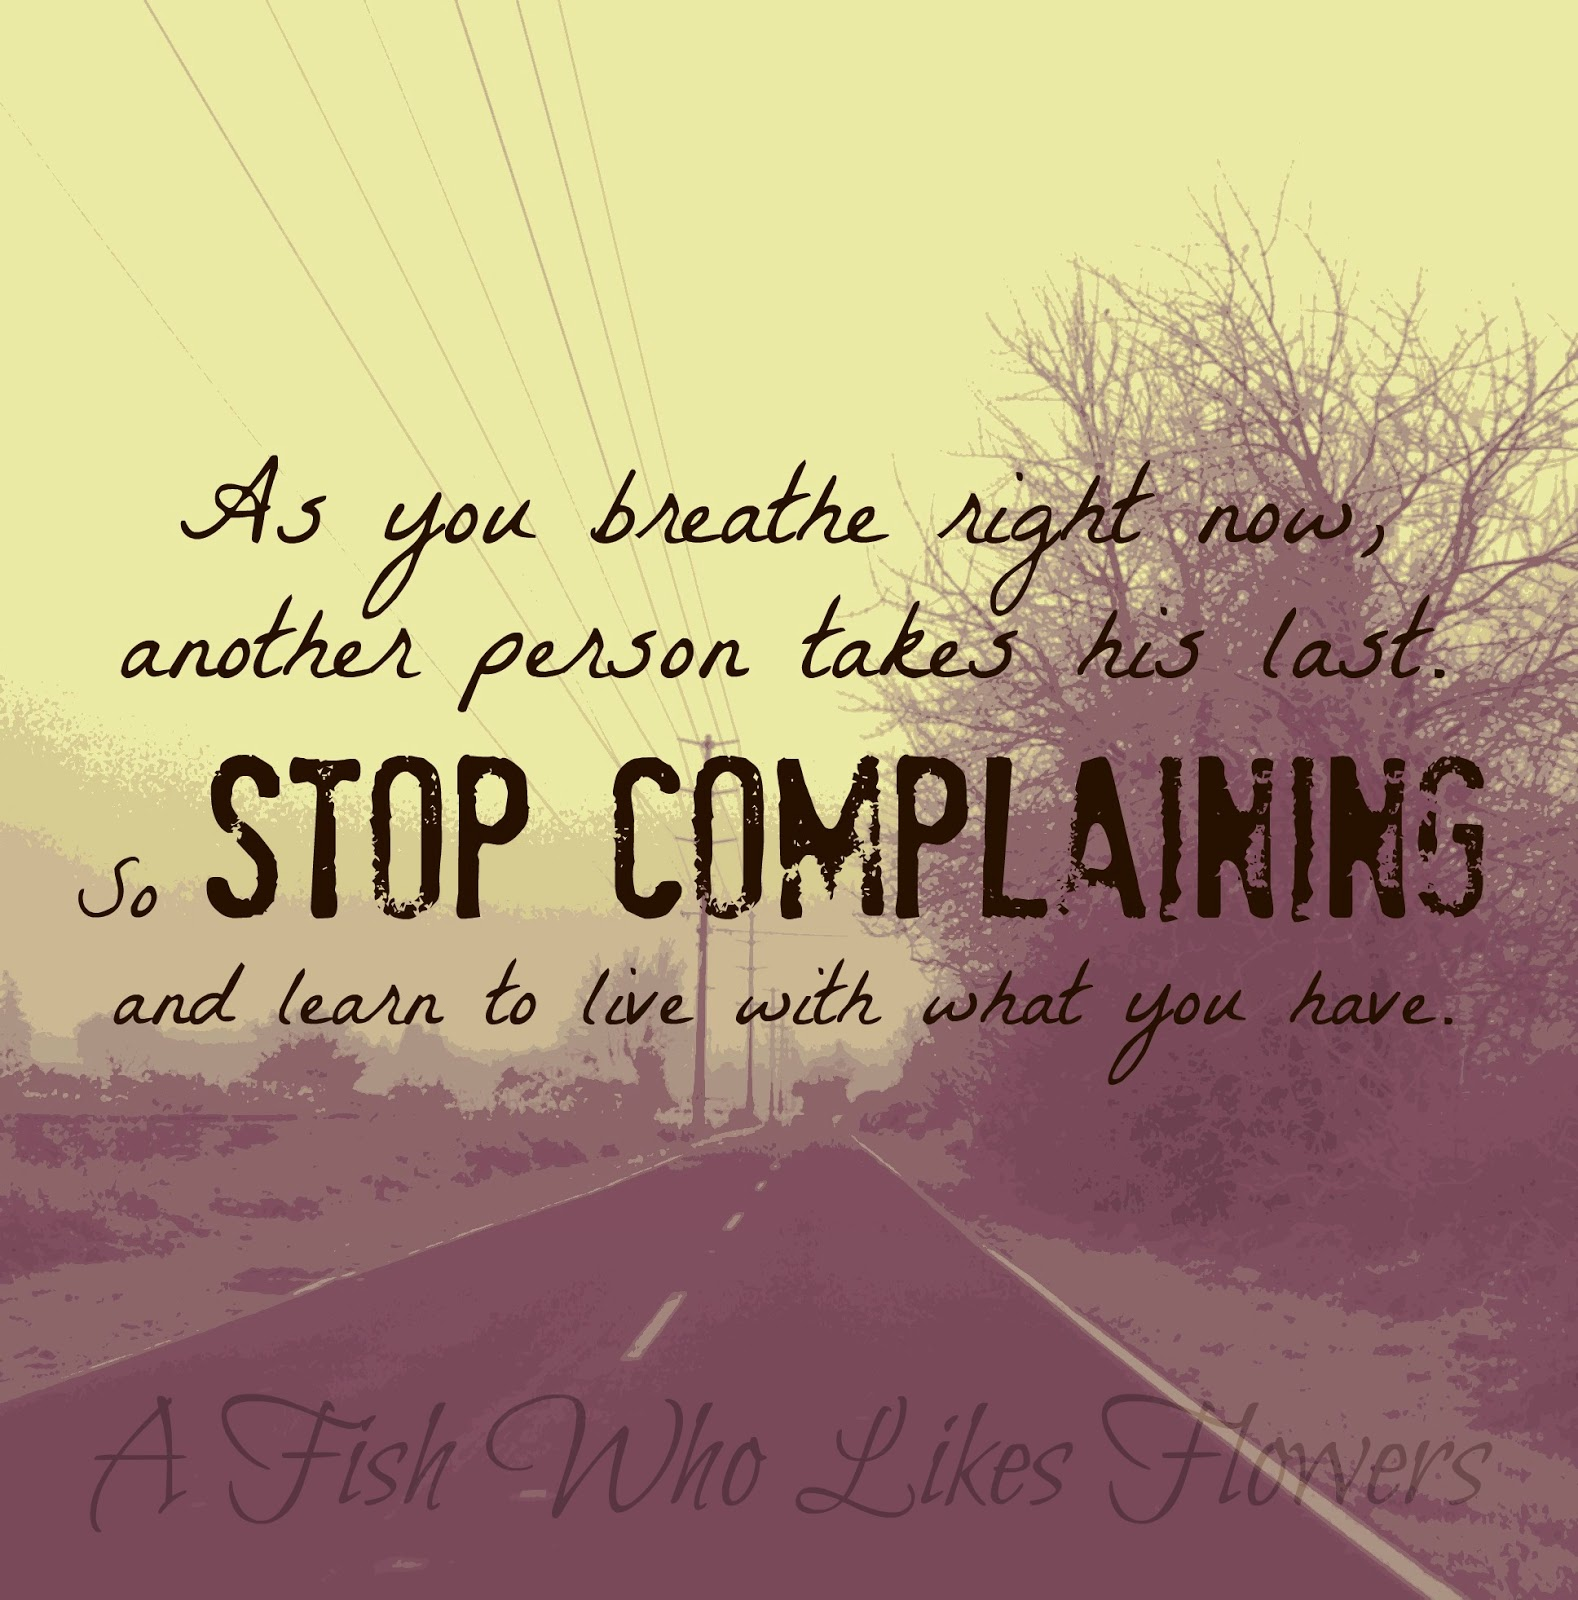 As You Breathe Right Now, Another Person Takes His Last. So Stop Complaining And Learn To Love With What You Have.